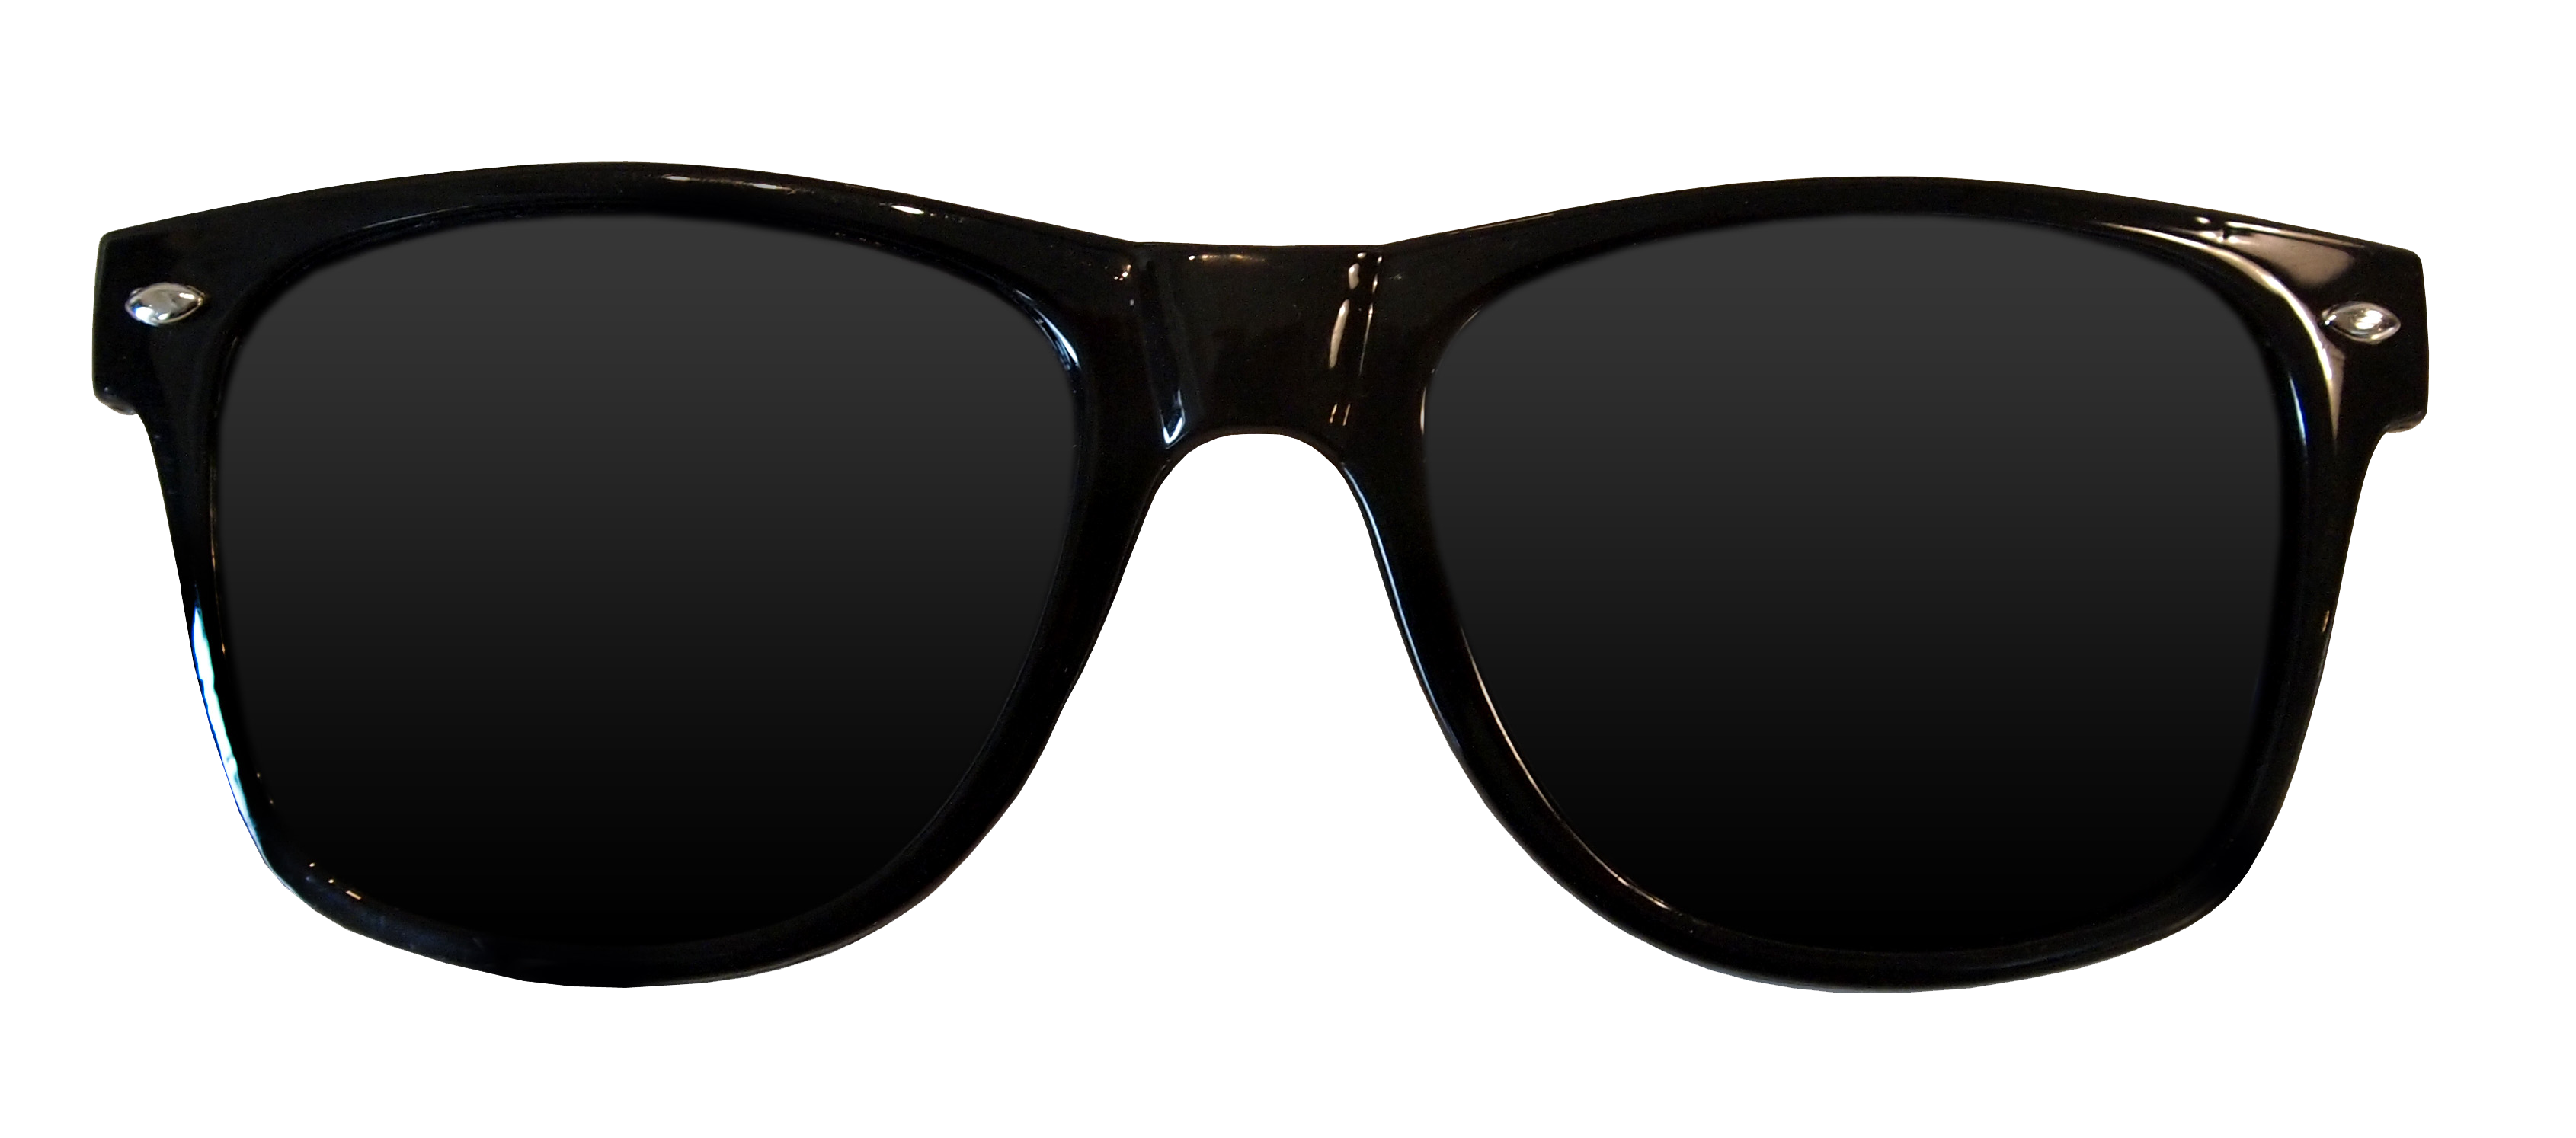 Sunglass png images.